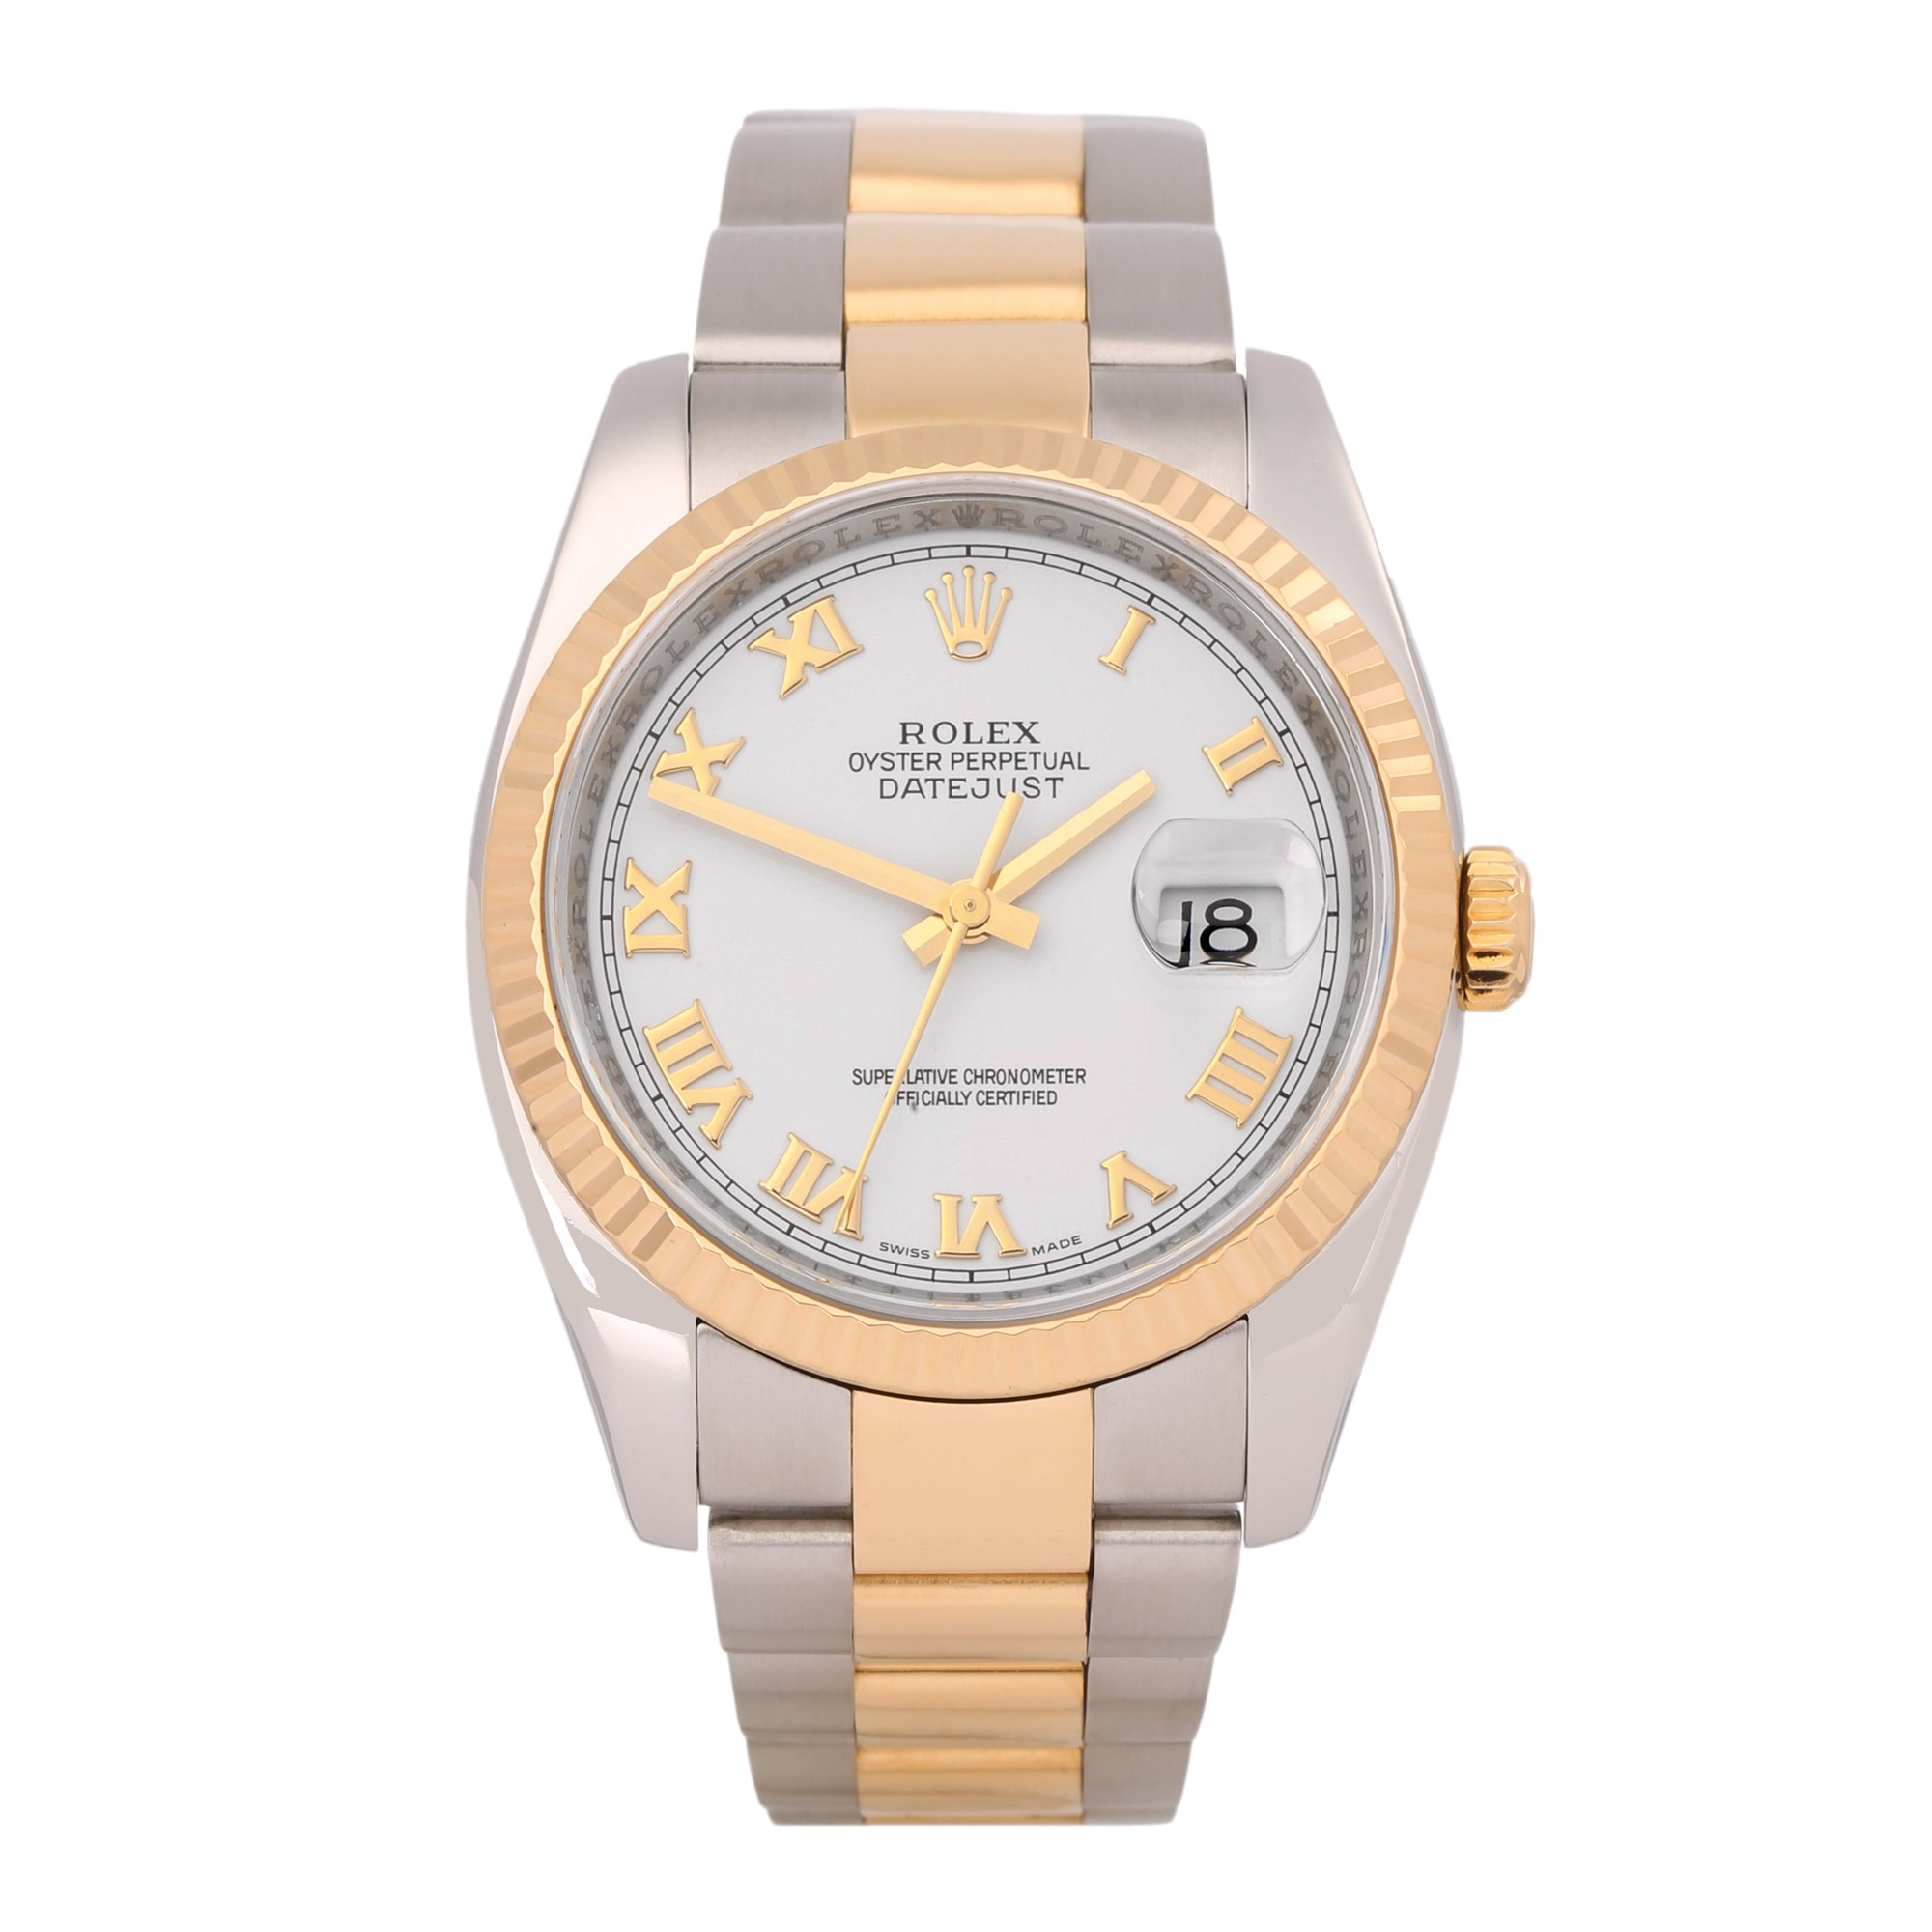 Rolex Datejust 36 Stainless Steel & Yellow Gold 116233